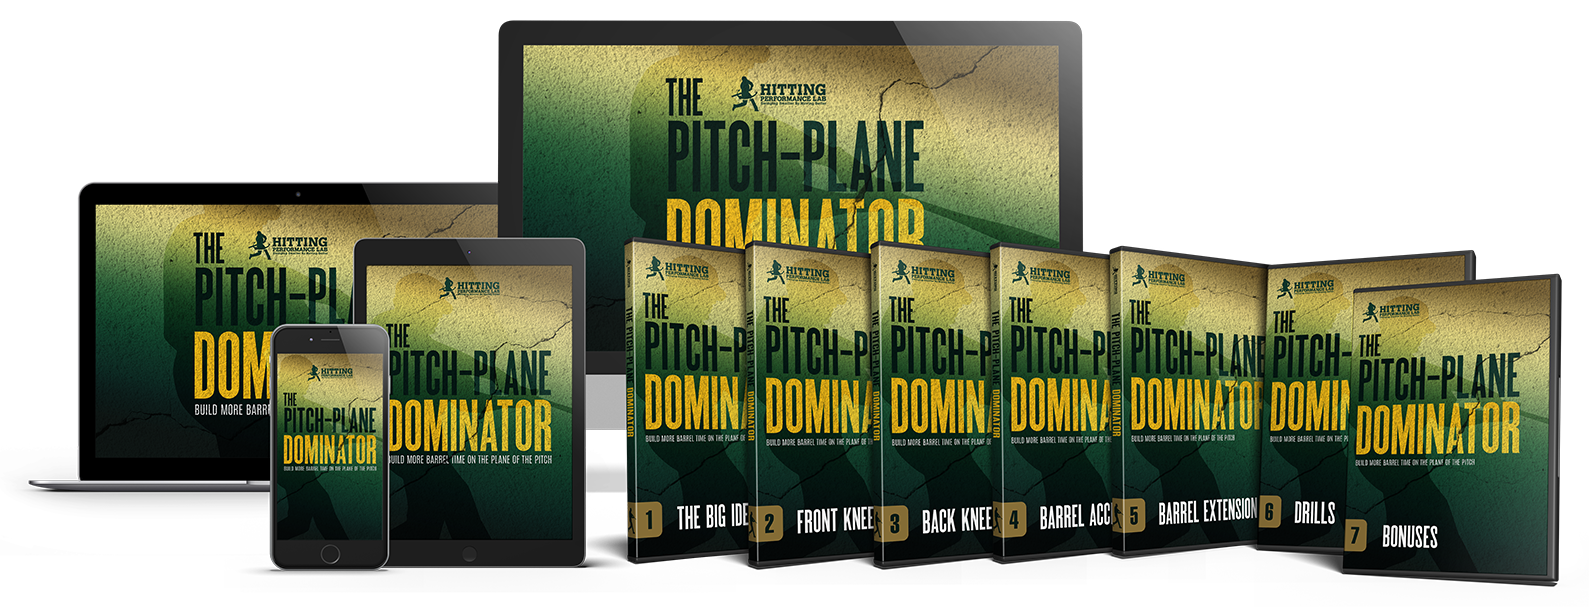 Pitch-Plane Dominator